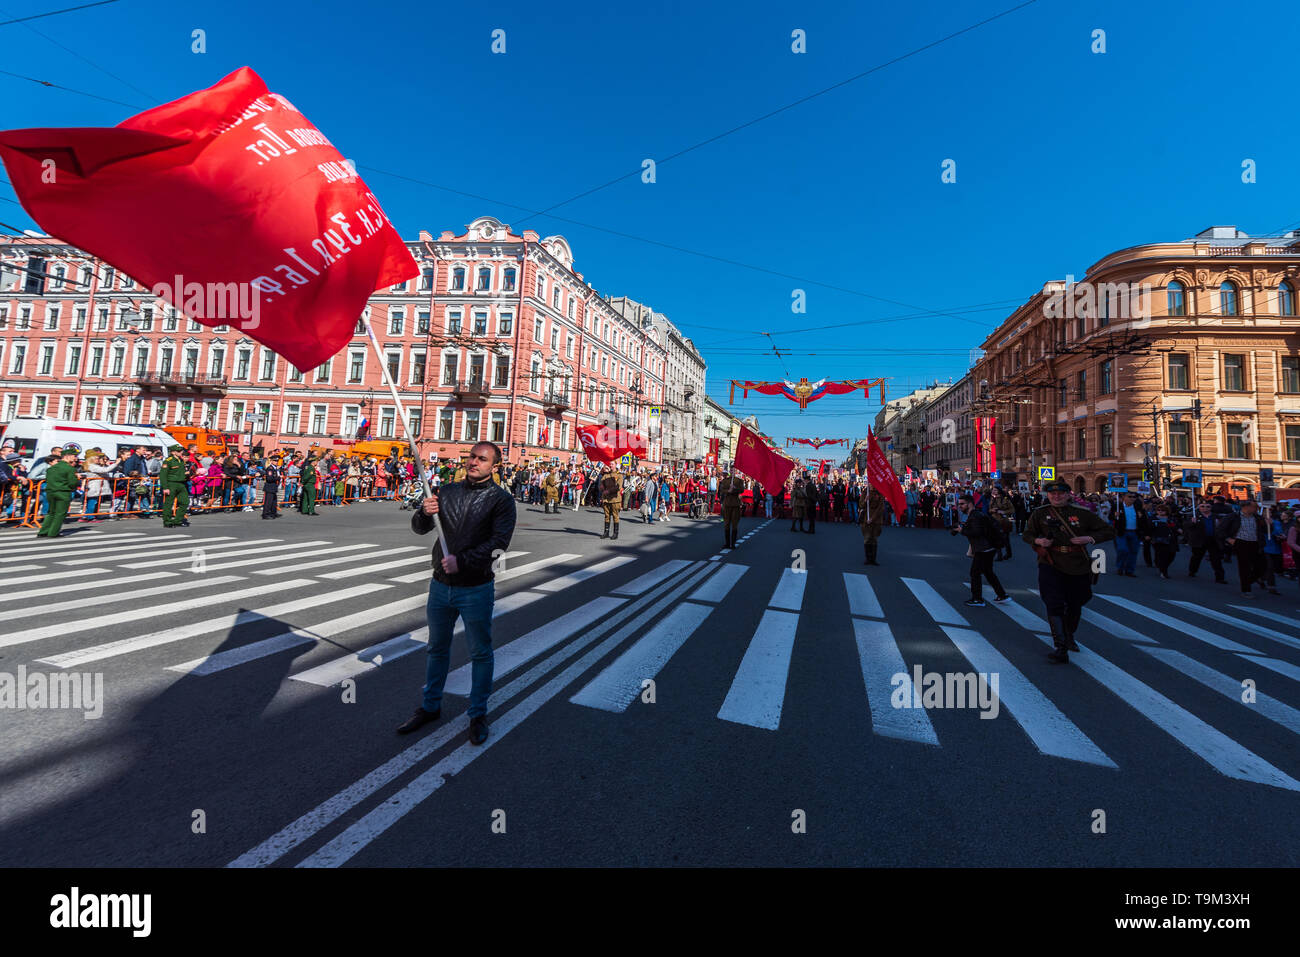 Immortal regiment - people carry banners of Soviet Union & comunism party, Victory Day, Nevsky Prospect, St. Petersburg, Russia - Stock Image